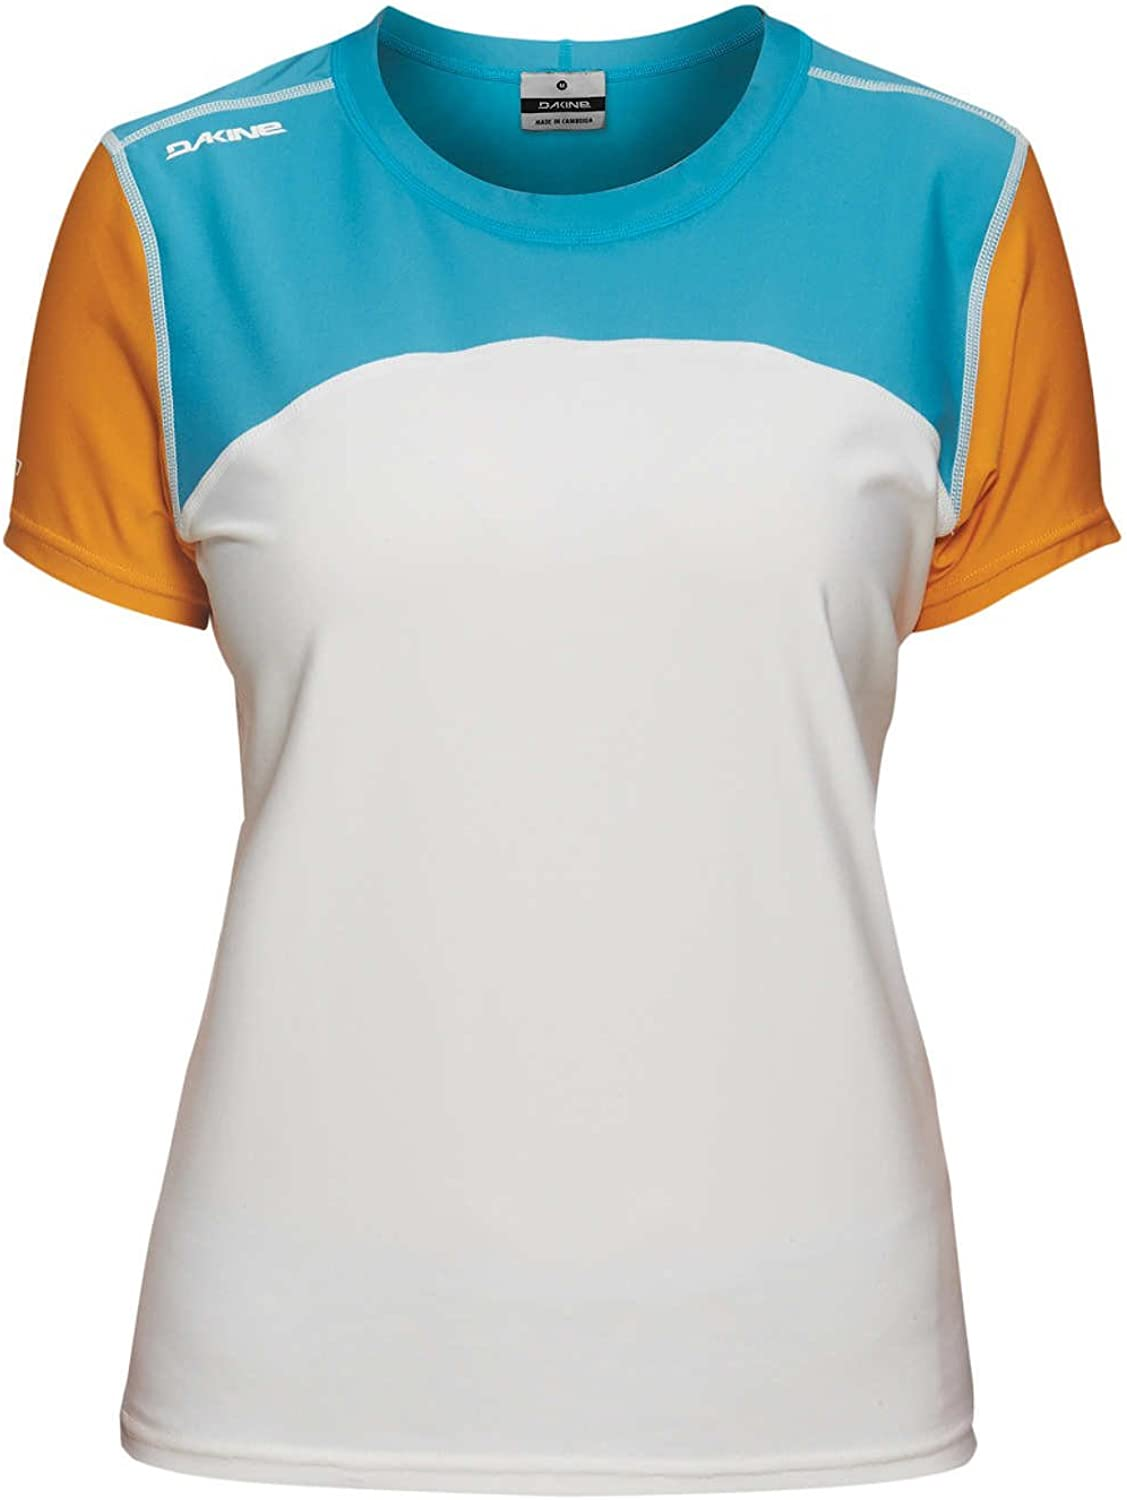 Dakine Women's Flow Loose Fit Short Sleeve Rashguard TShirt